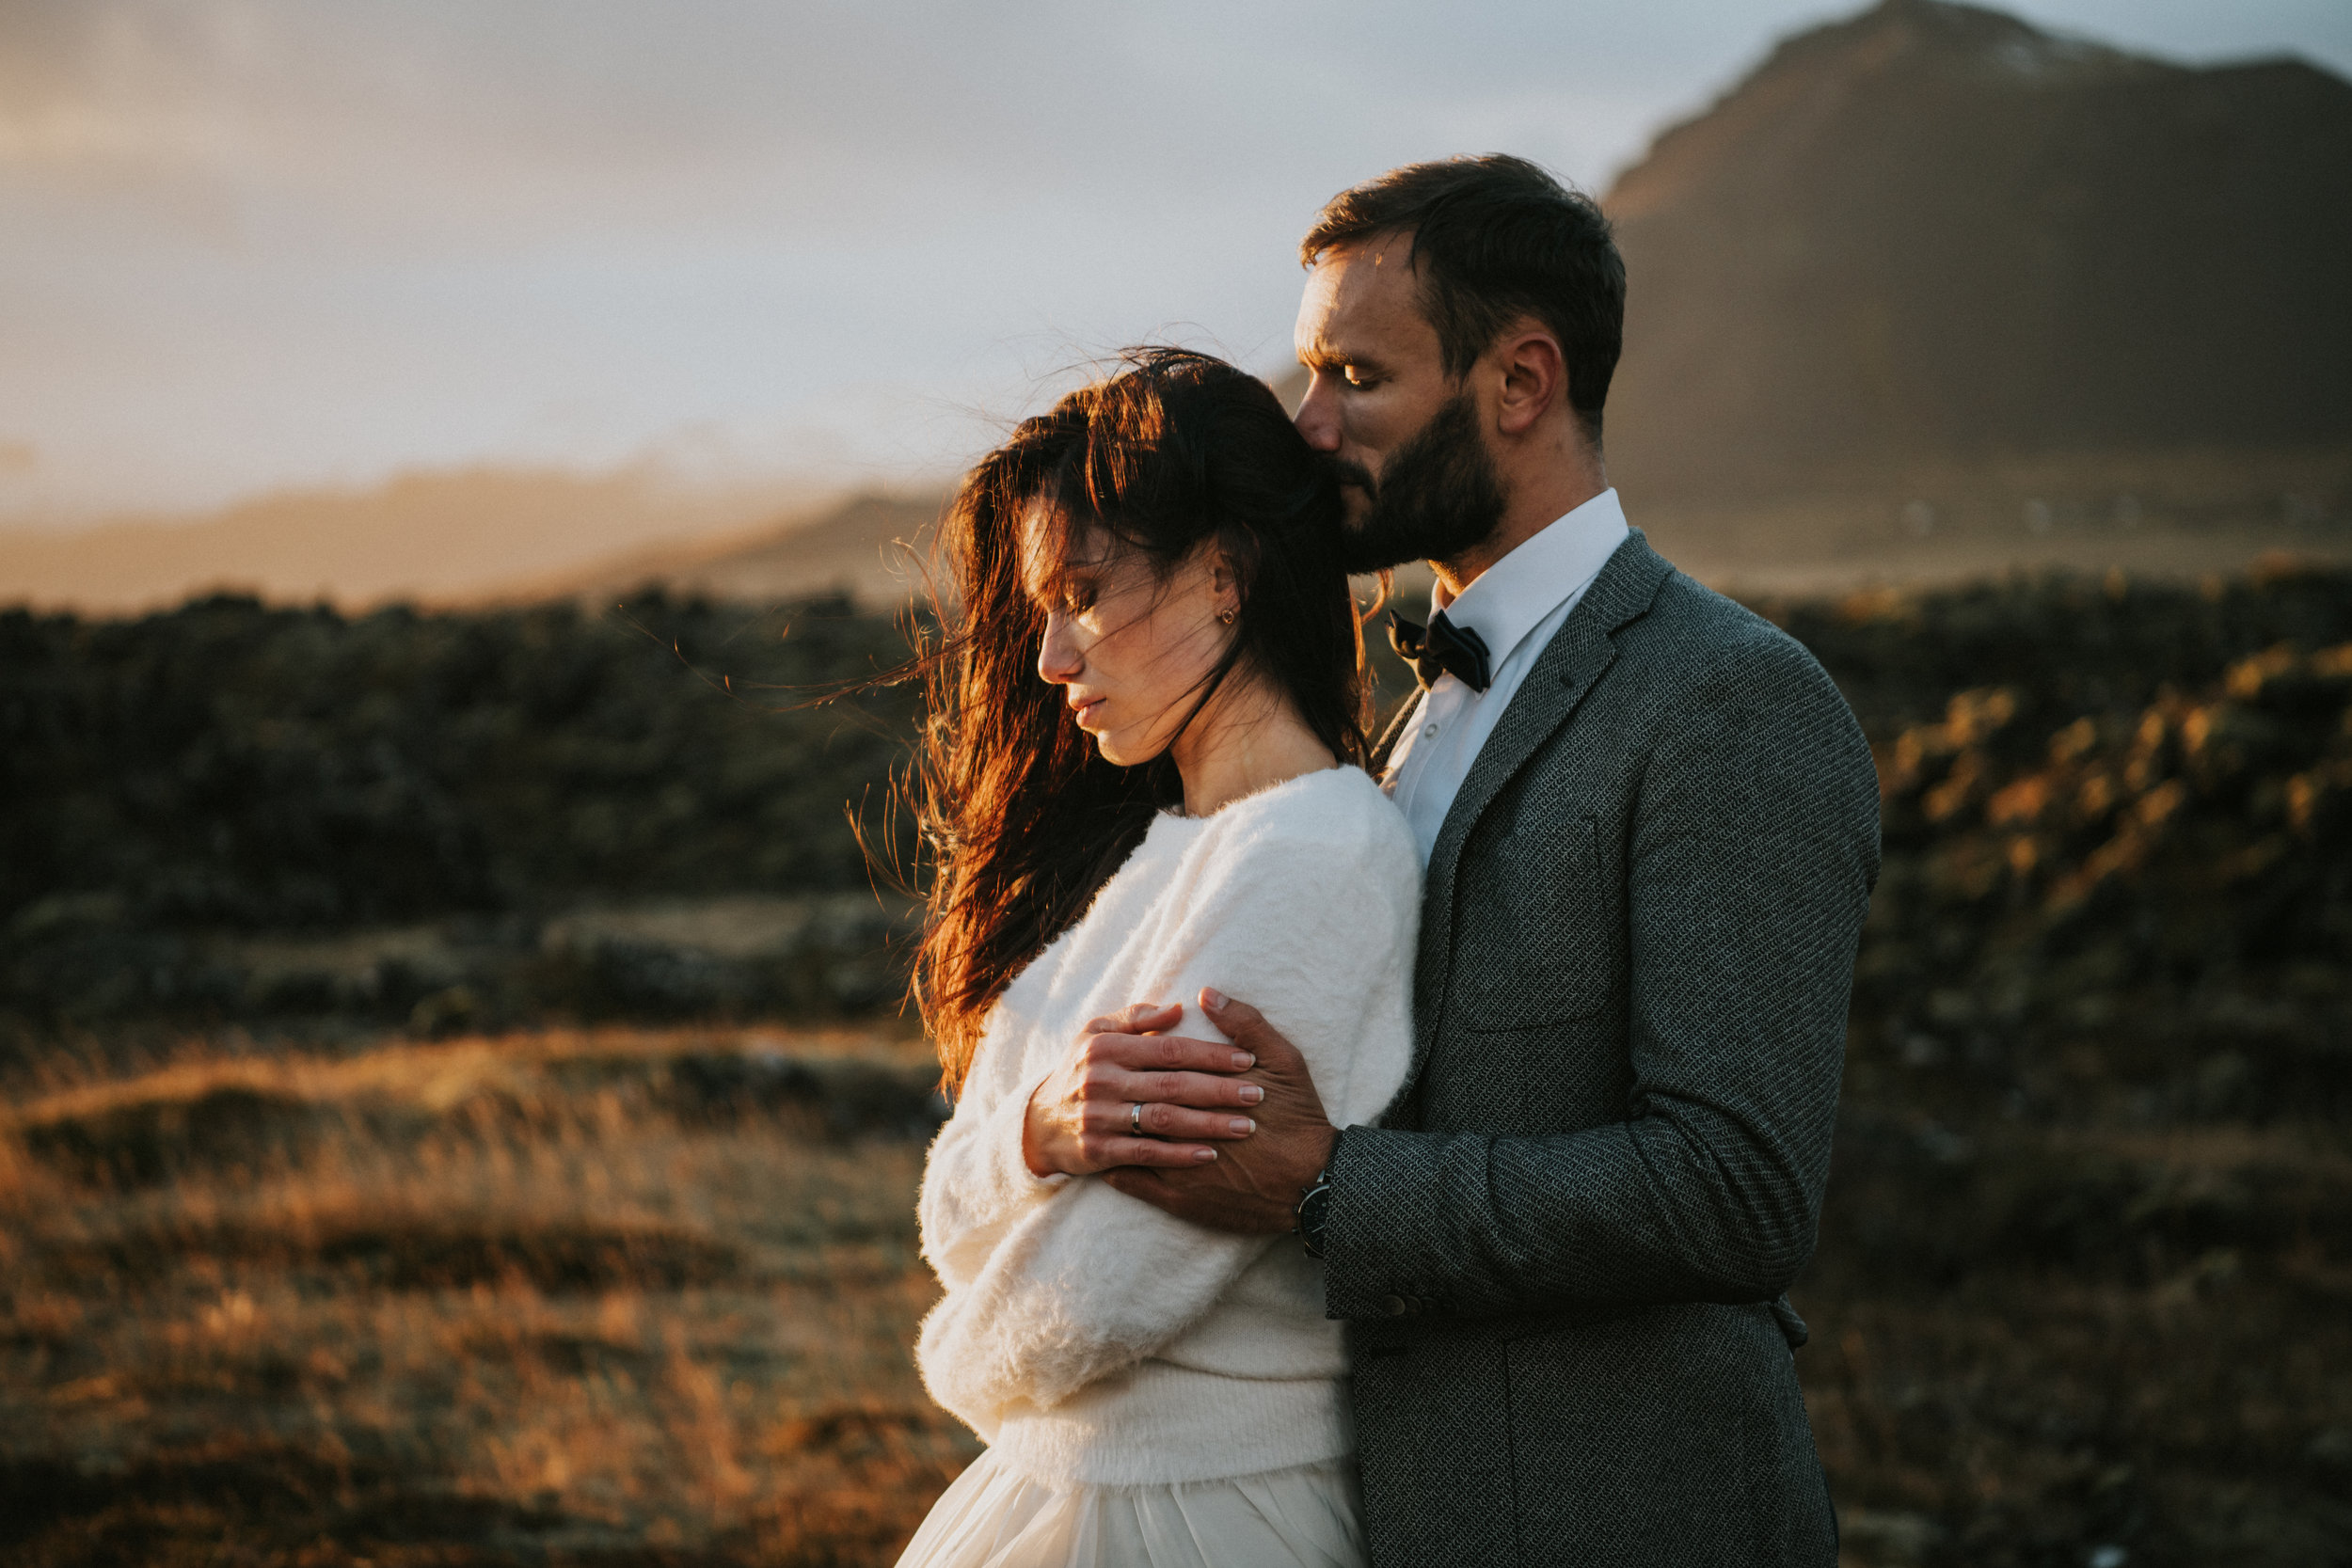 Natalie-Vitaly-Iceland-Elopement-Photographer-Videographer-46